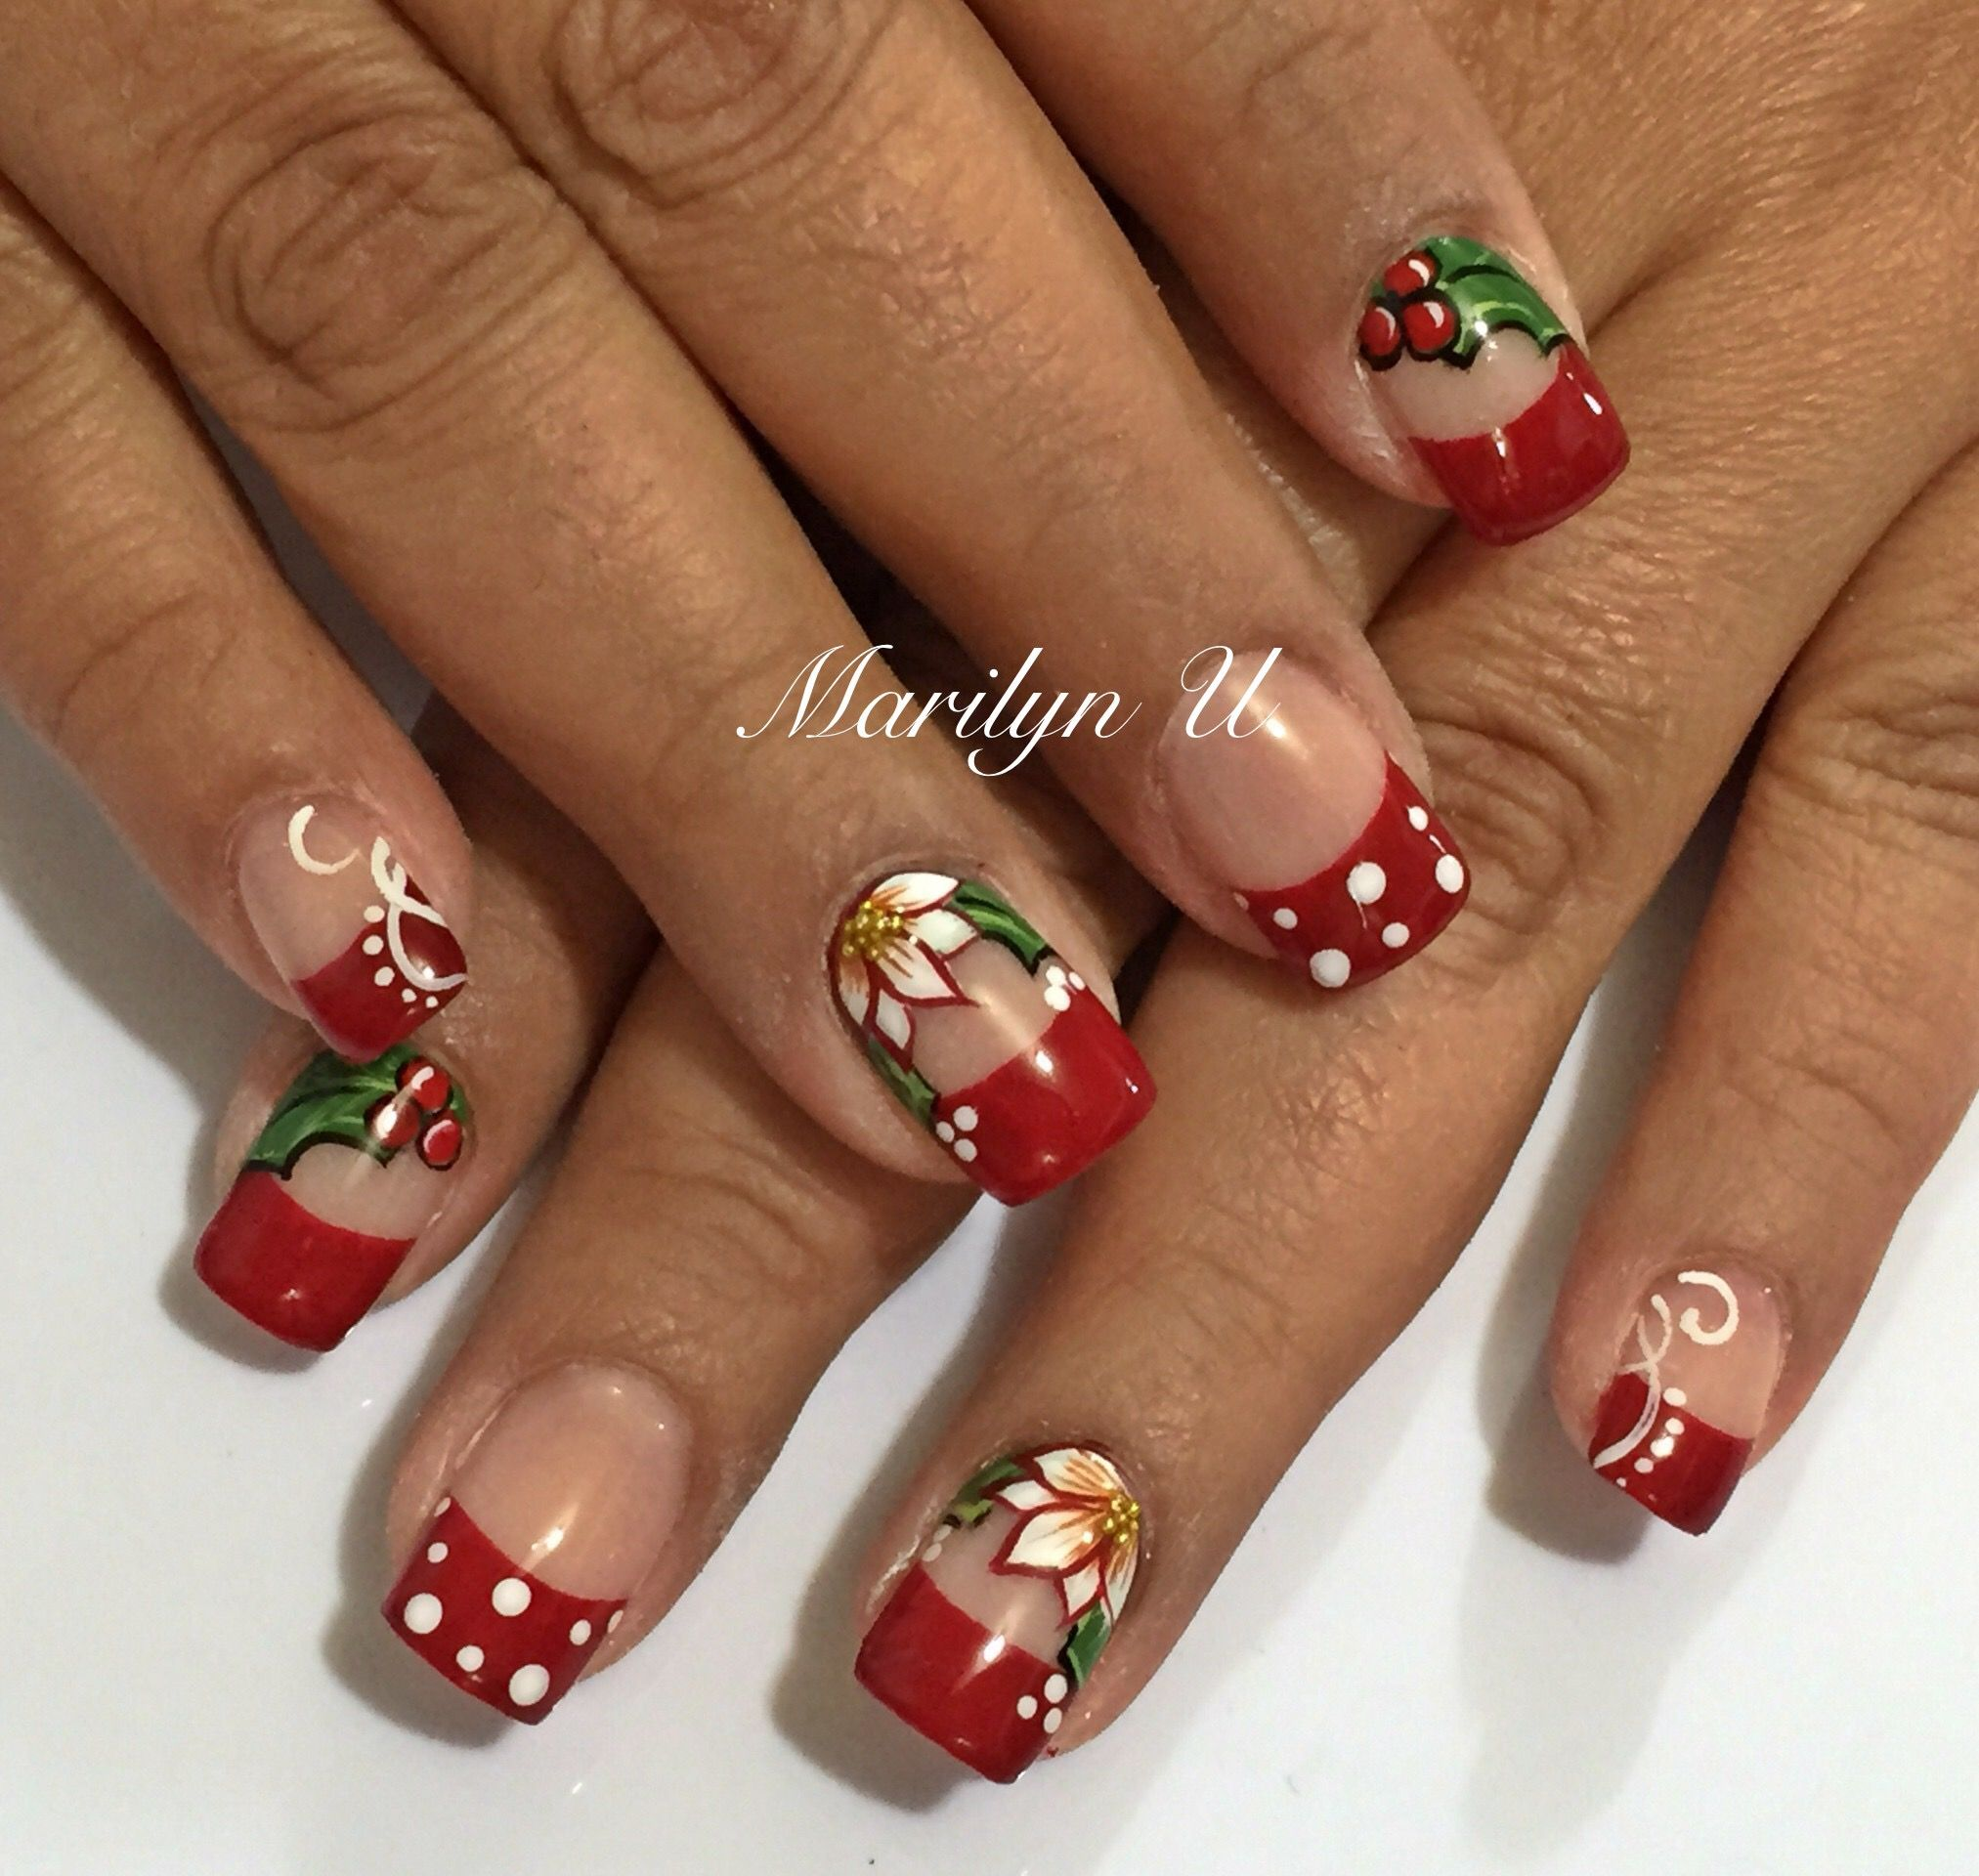 Pin by Marilyn Ugalde on Navidad | Pinterest | Xmas nails and Manicure